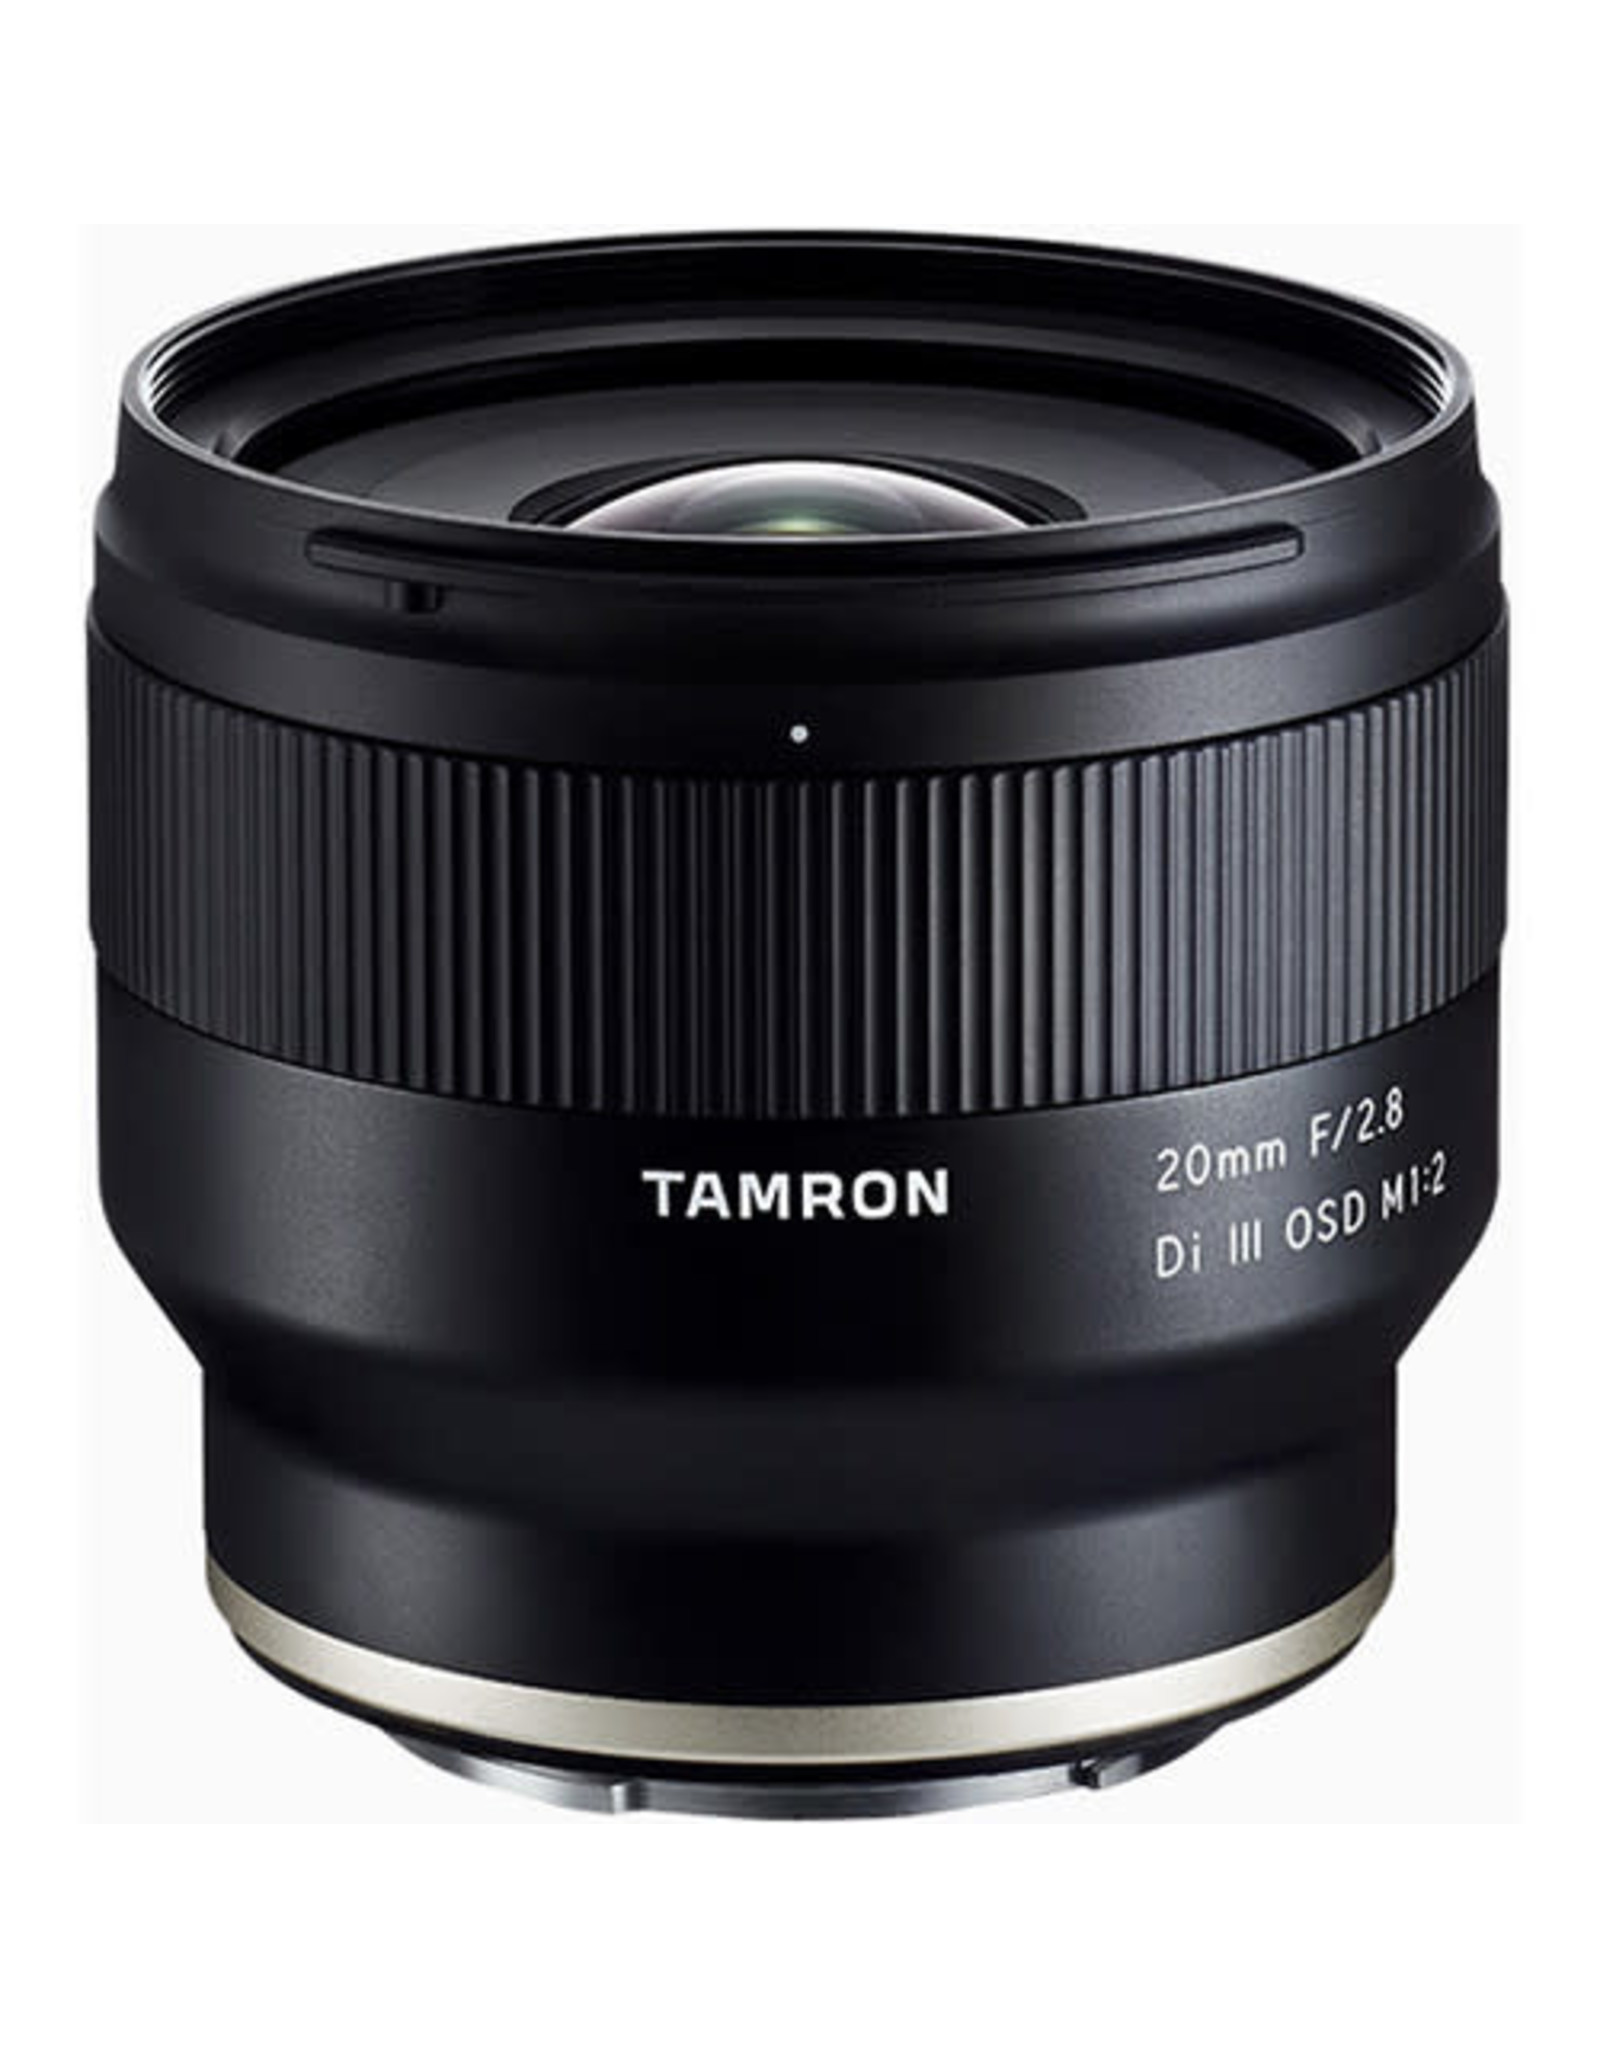 Tamron Tamron 20mm f/2.8 Di III OSD M 1:2 Lens for Sony E